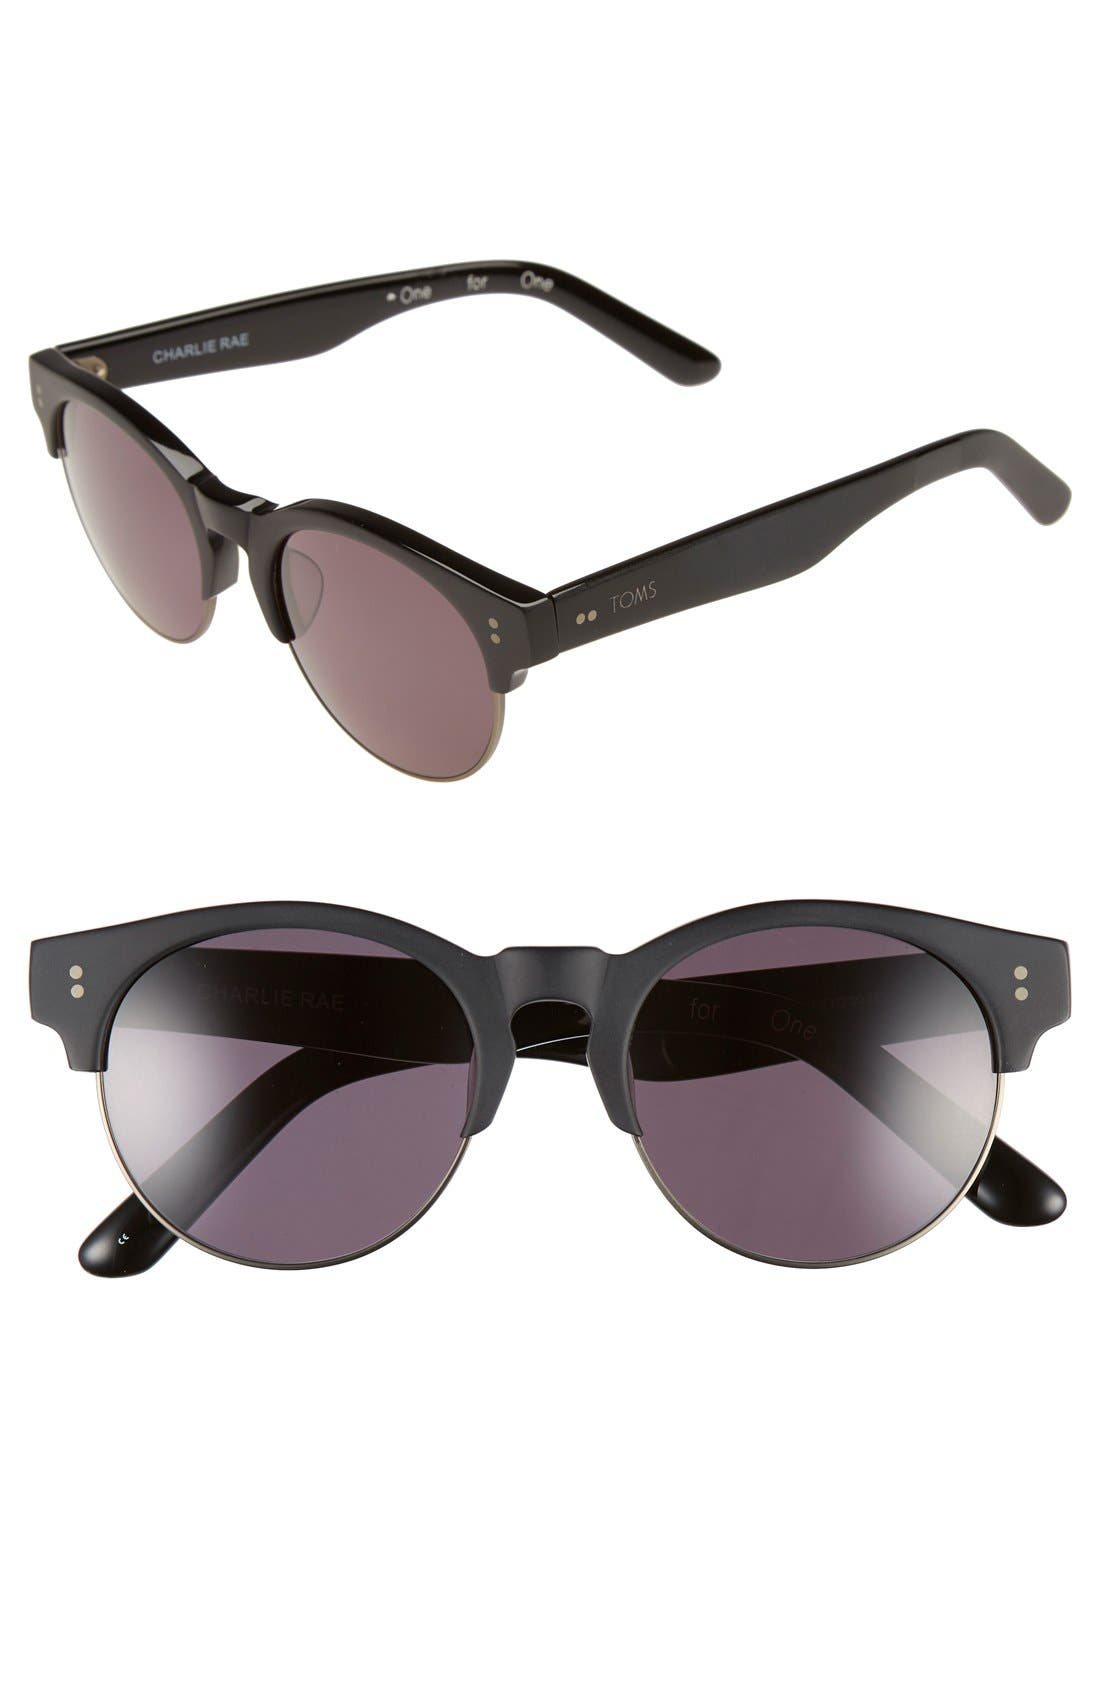 Alternate Image 1 Selected - TOMS 'Charlie Rae' 52mm Sunglasses